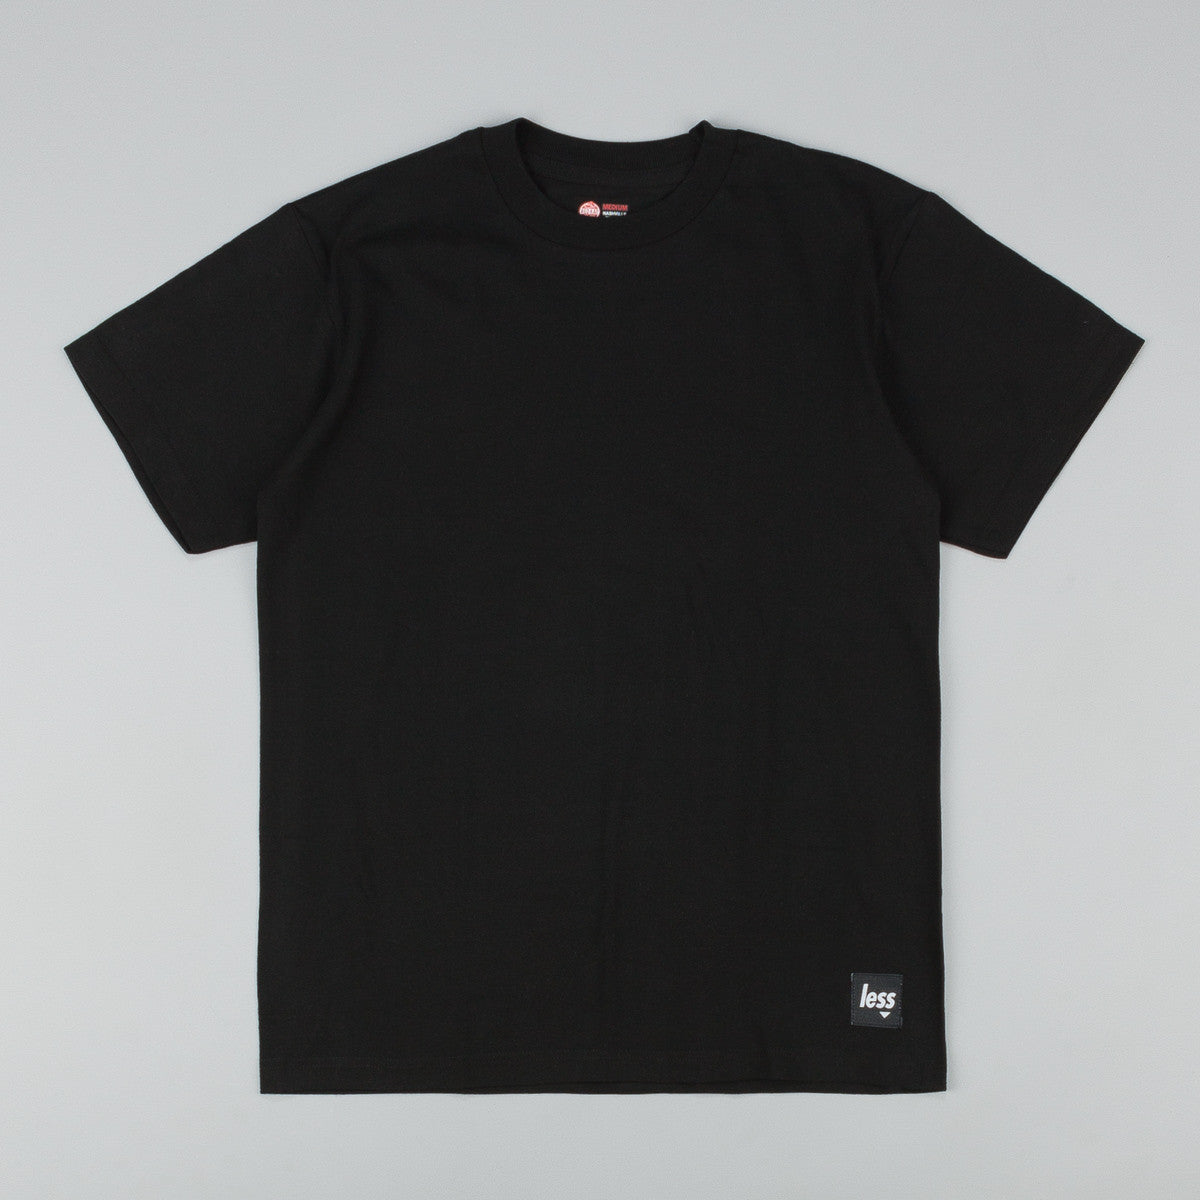 Less x Red Kap Single Jersey 2 Pack T-Shirt - Black